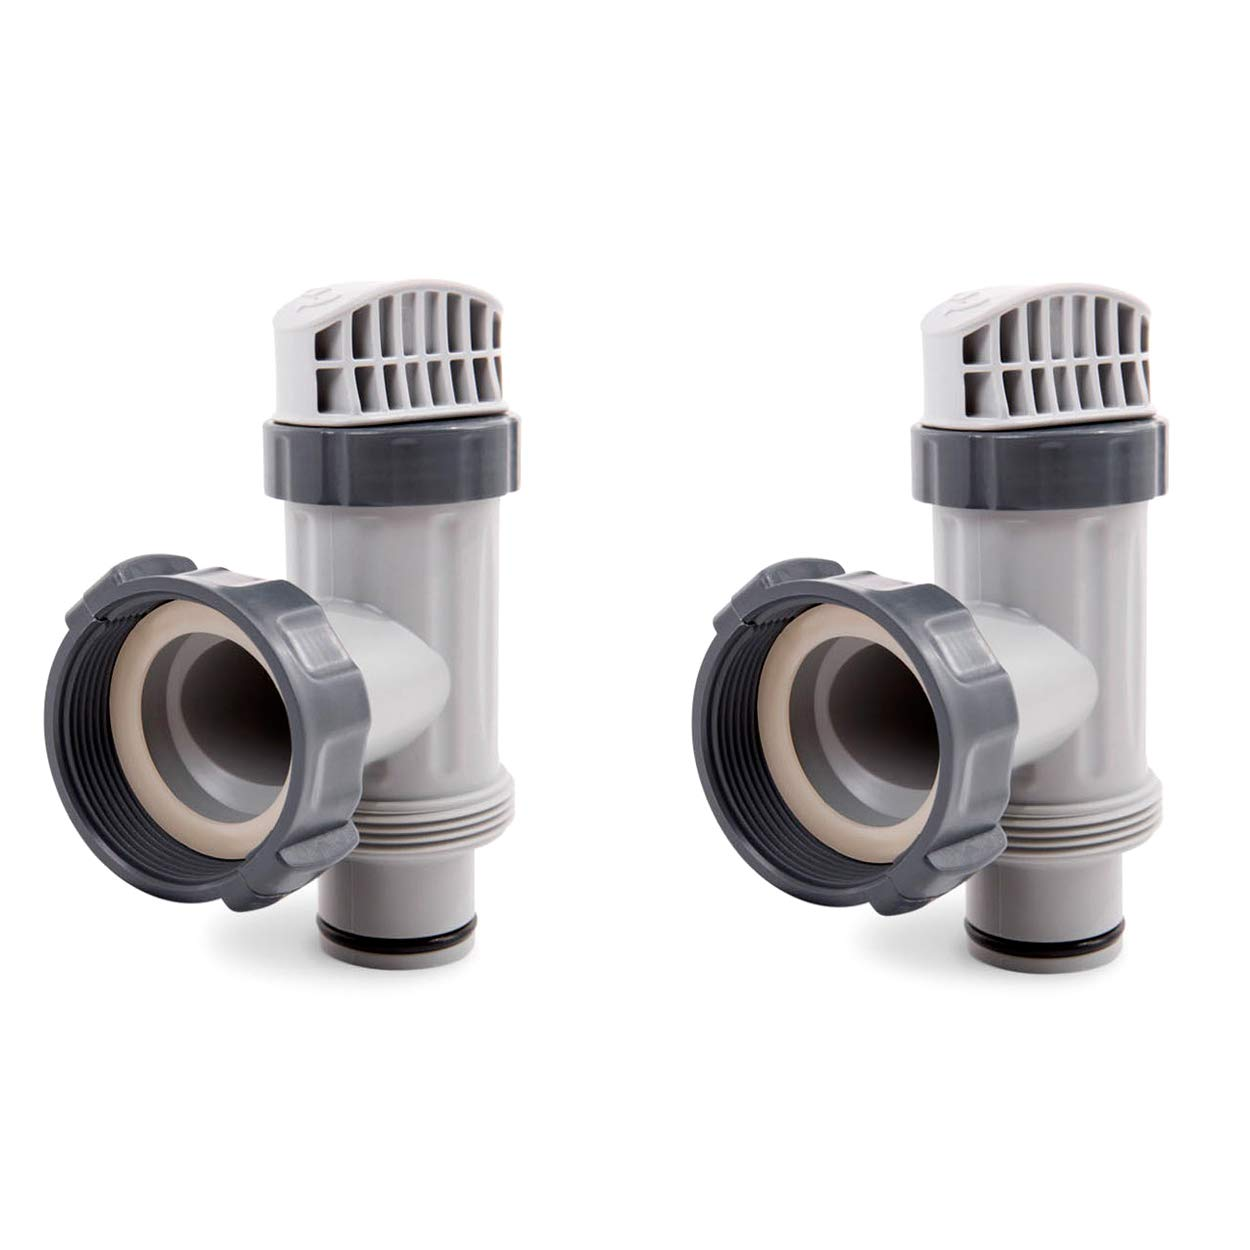 Intex Above Ground Plunger Valves with Gaskets & Nuts Replacement Part (2 Pack)